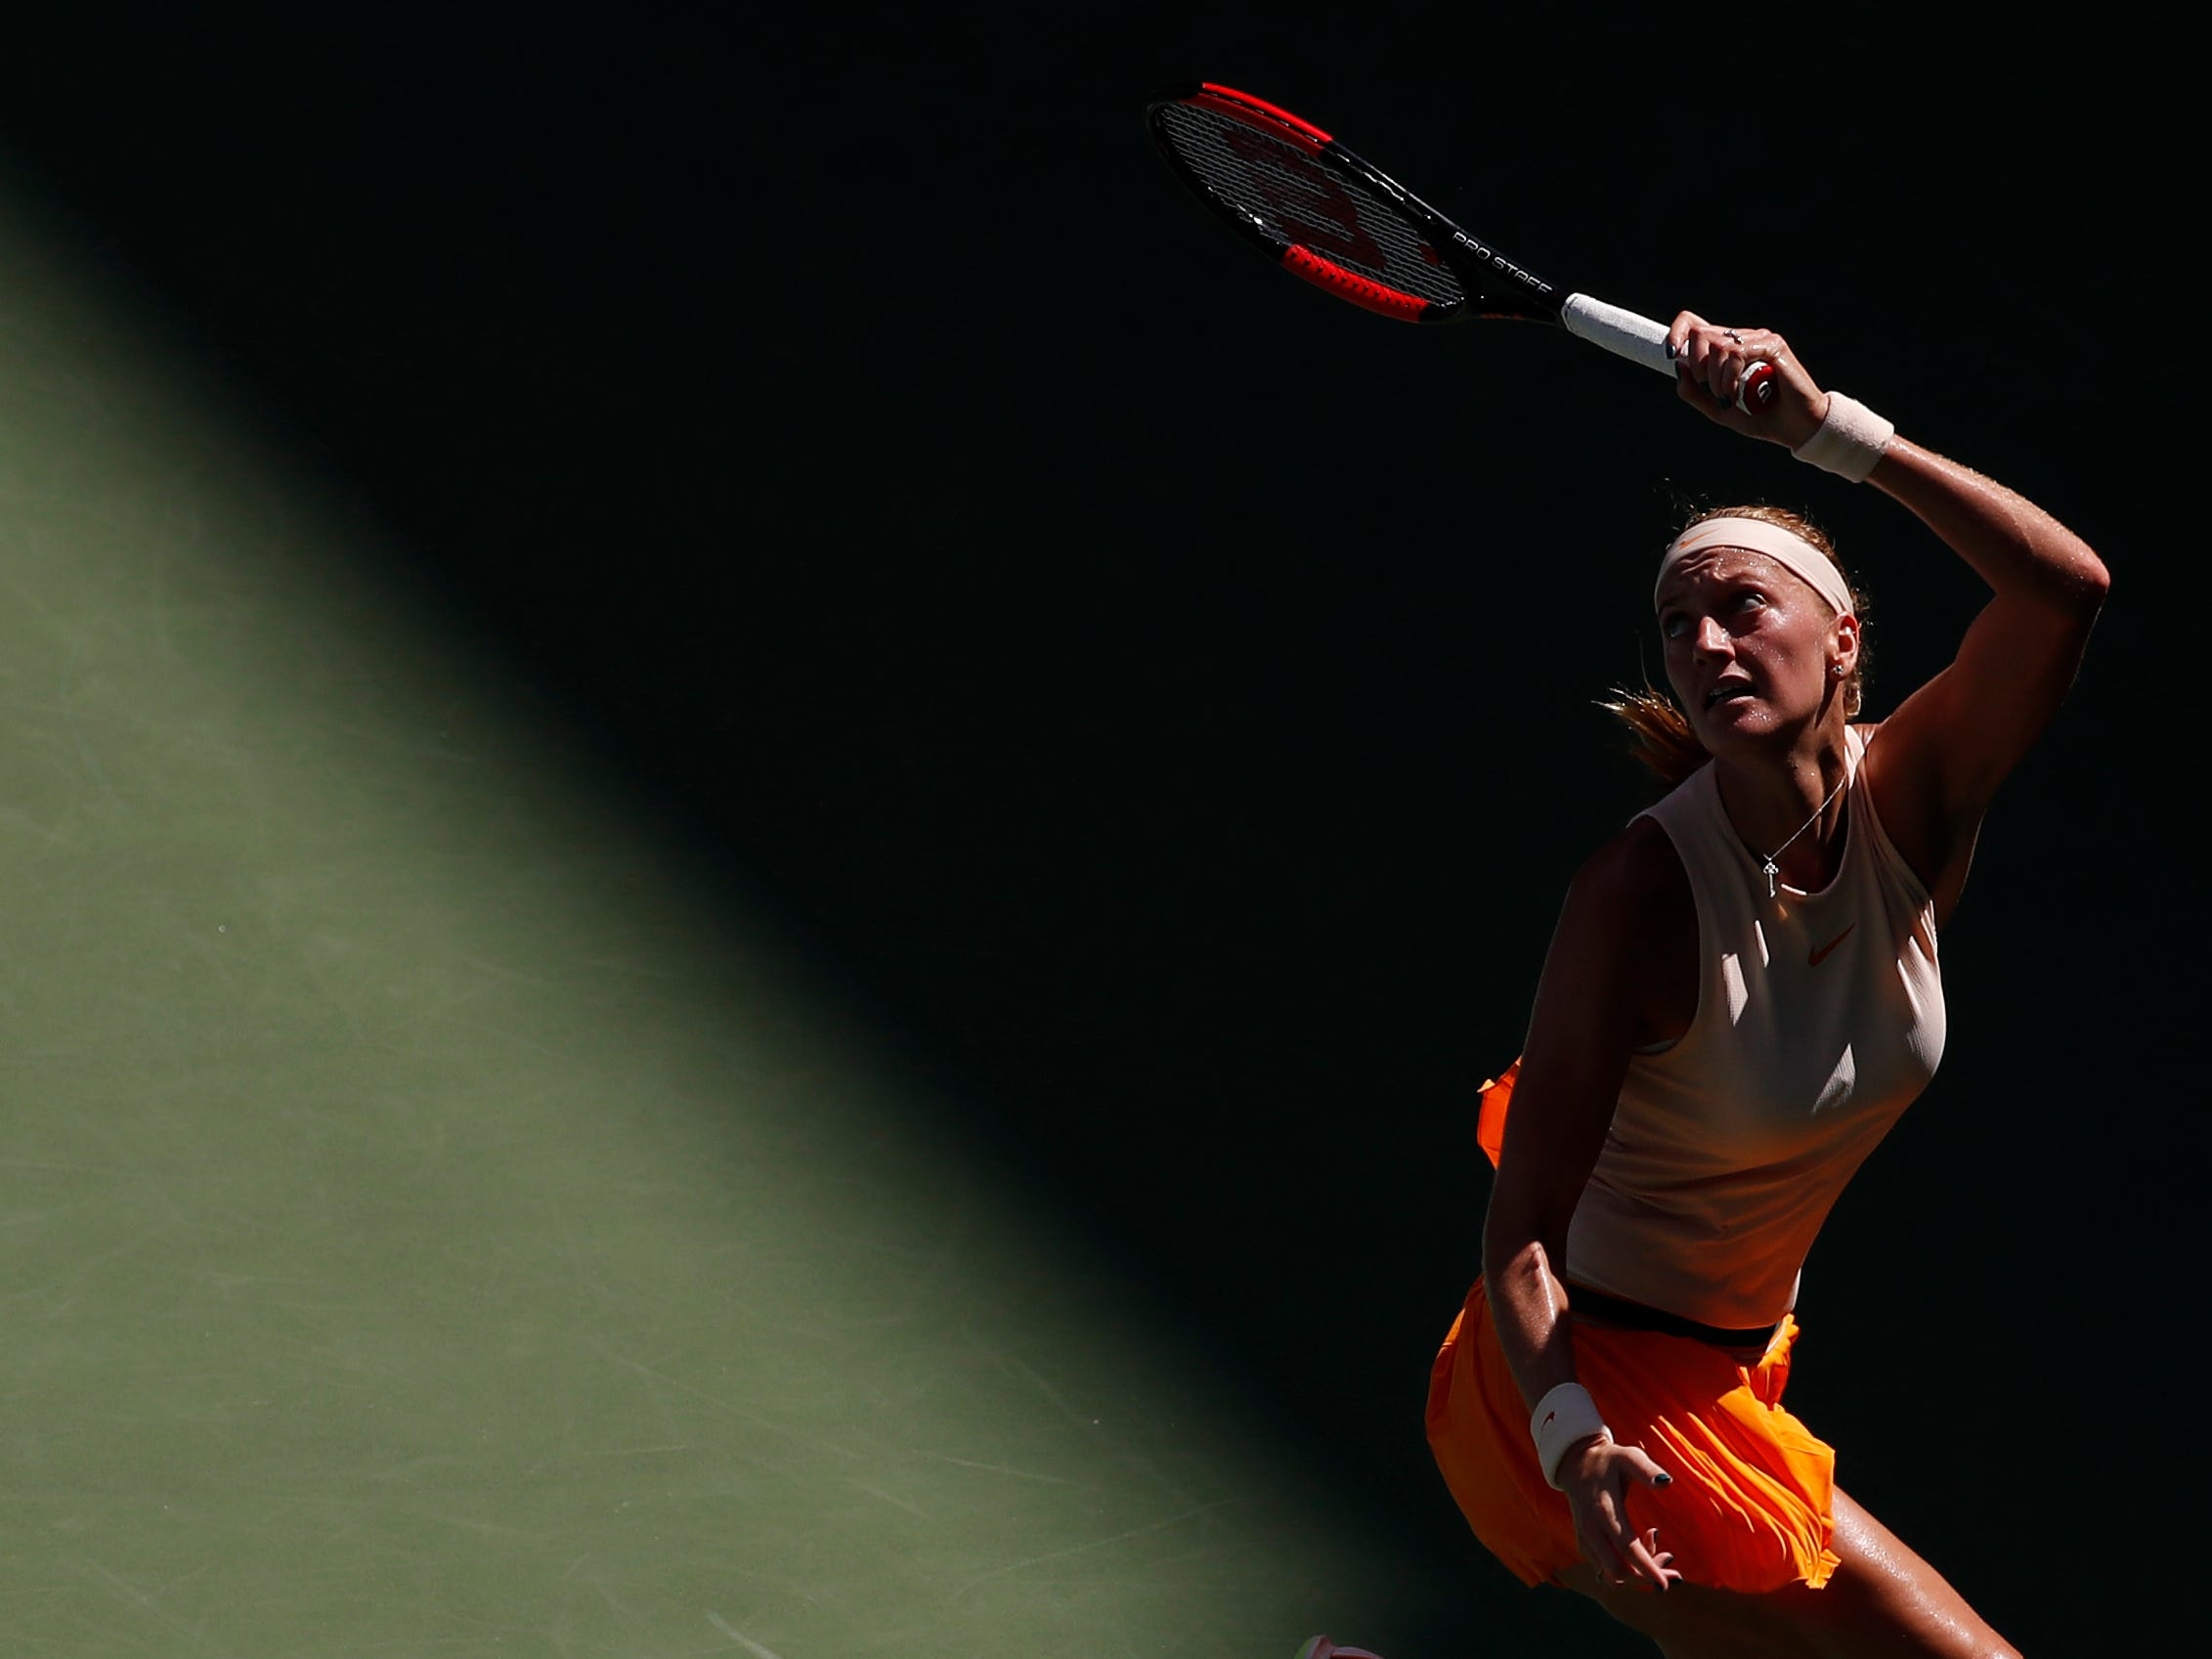 Petra Kvitova of Czech Republic hits a forehand against Yafan Wang of China.